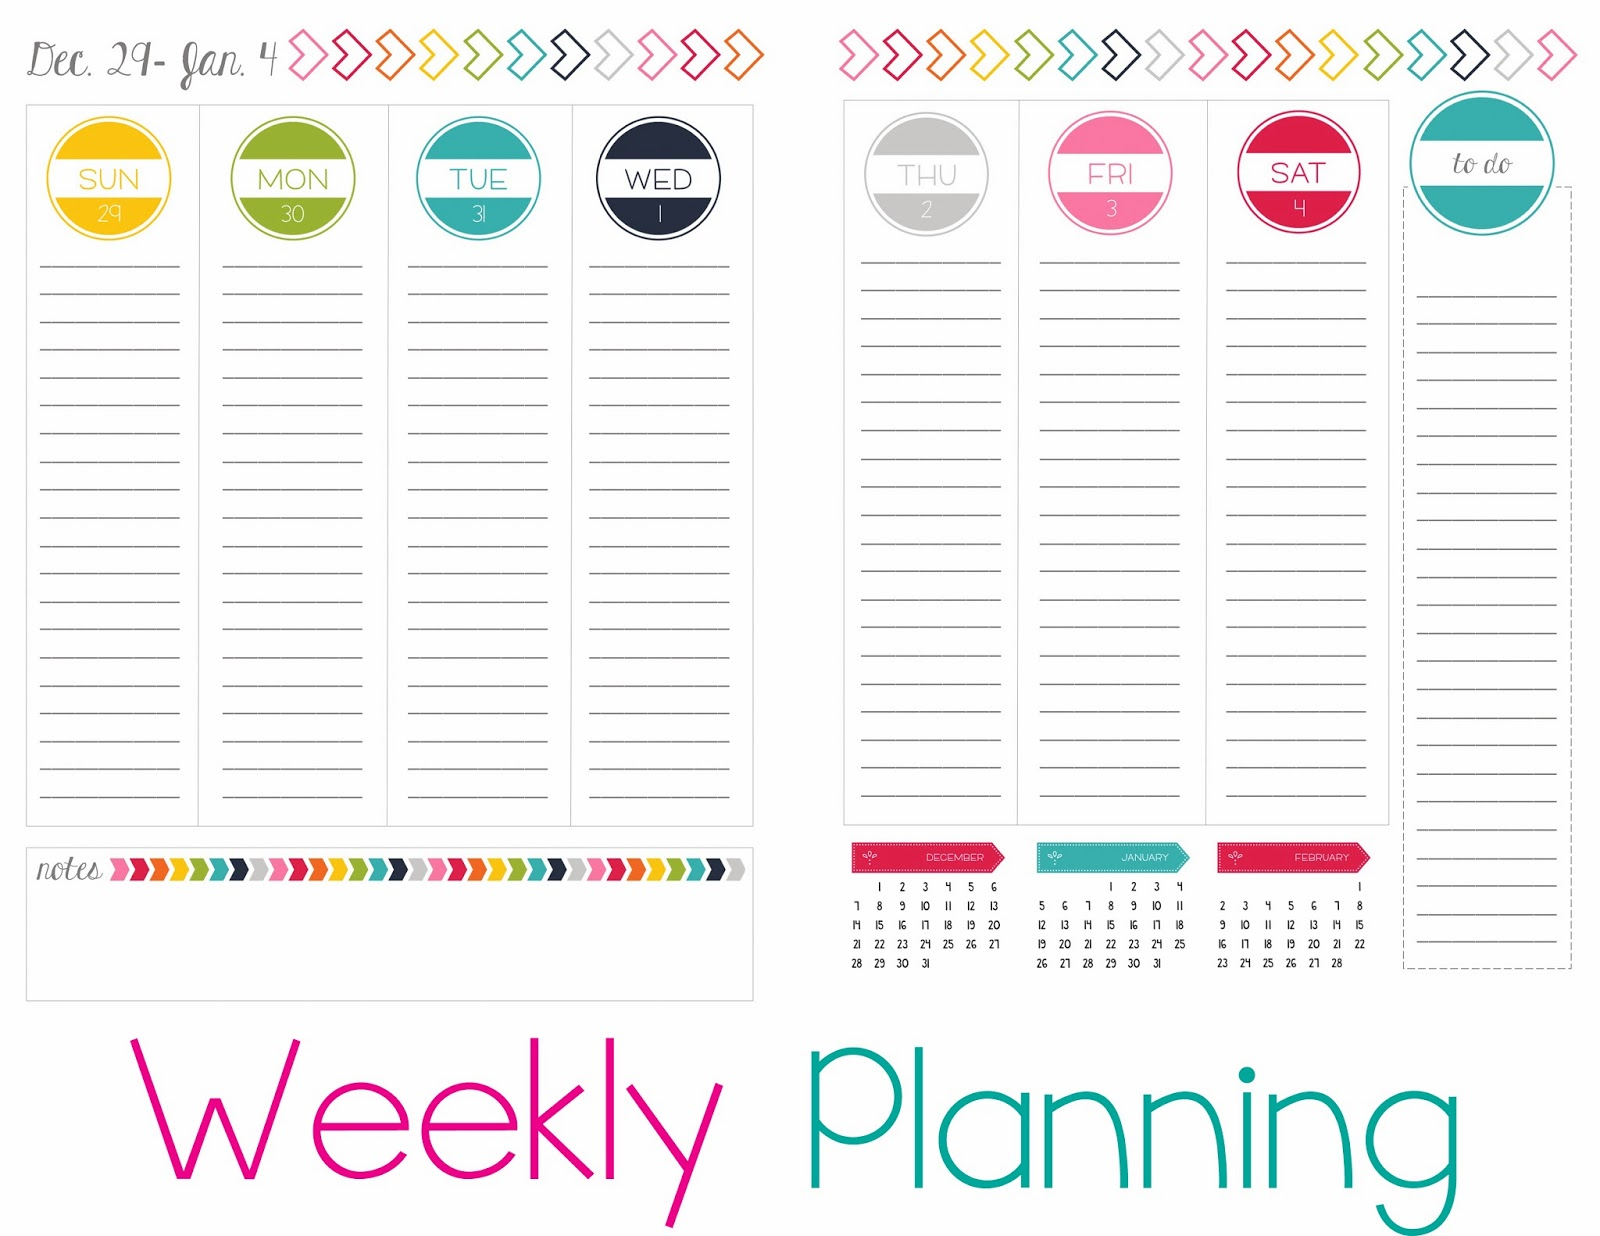 Daily Planner 2014 | www.galleryhip.com - The Hippest Pics